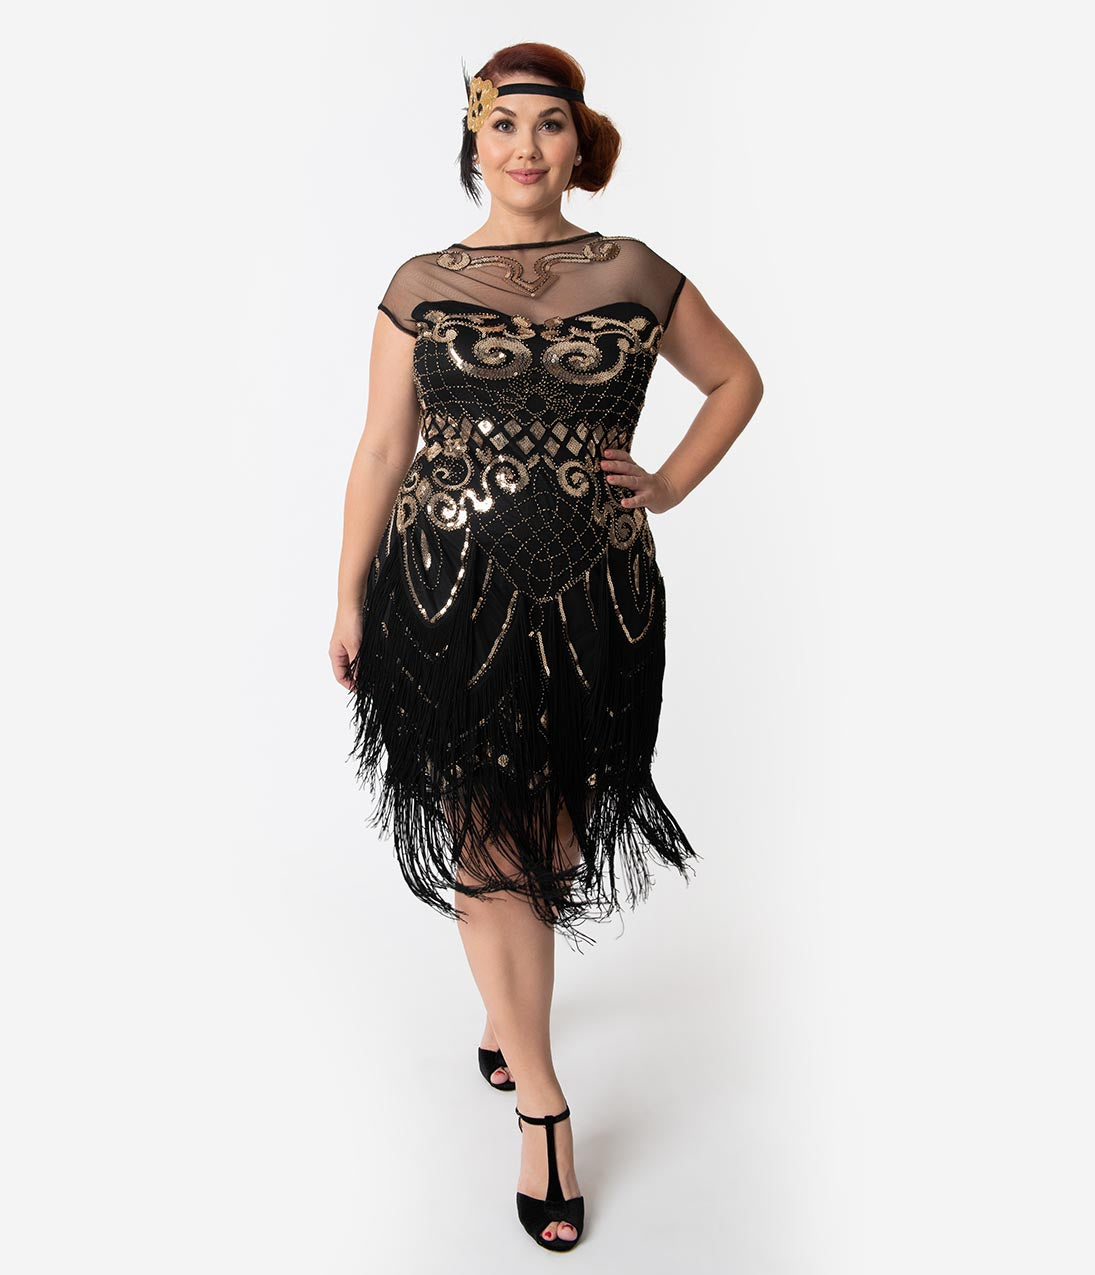 1155d9638 Unique Vintage Plus Size 1920s Black & Gold Sequin Fringe Zulla Flapper  Dress